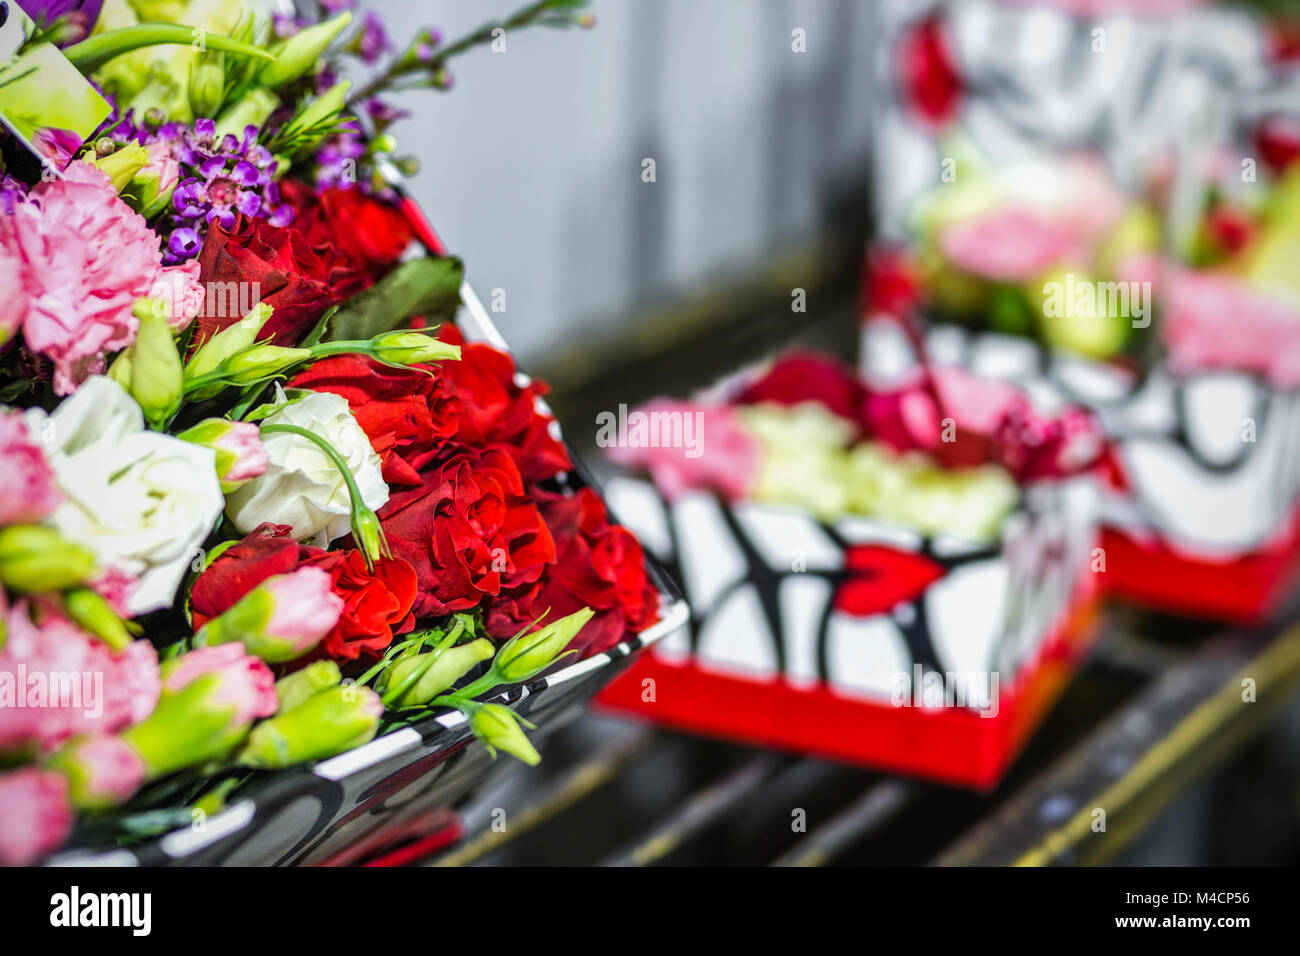 Beautiful bouquet of fresh flowers in boxes florist service concept beautiful bouquet of fresh flowers in boxes florist service concept retail and gross cut flower store concept flowermarket background izmirmasajfo